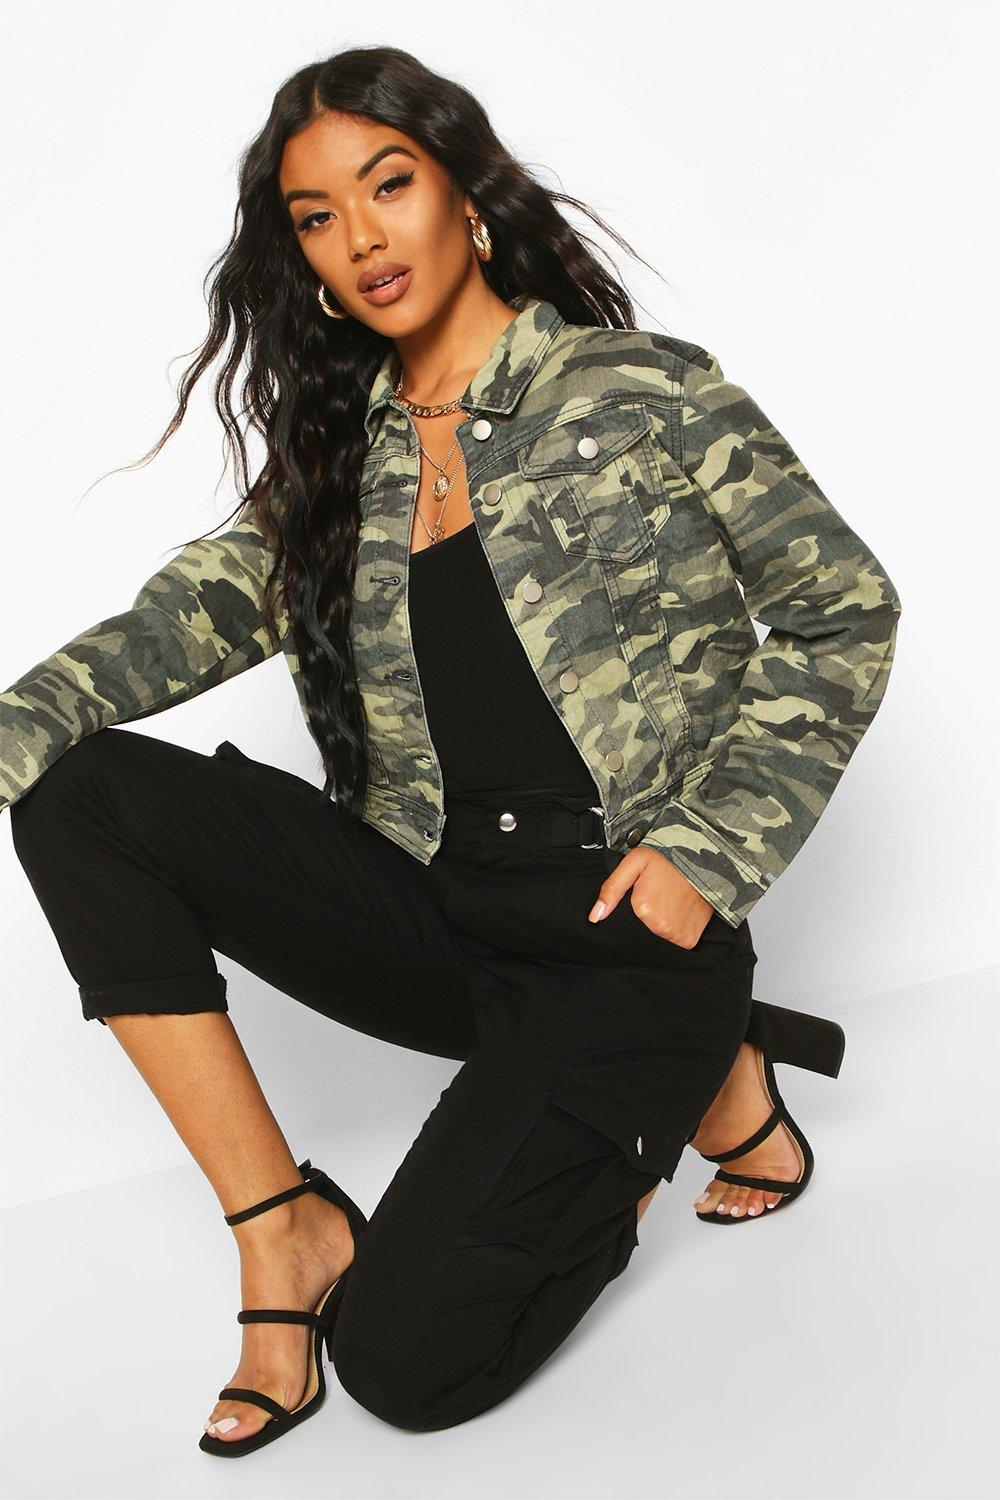 boohoo womens ally camouflage denim jacket ebay. Black Bedroom Furniture Sets. Home Design Ideas